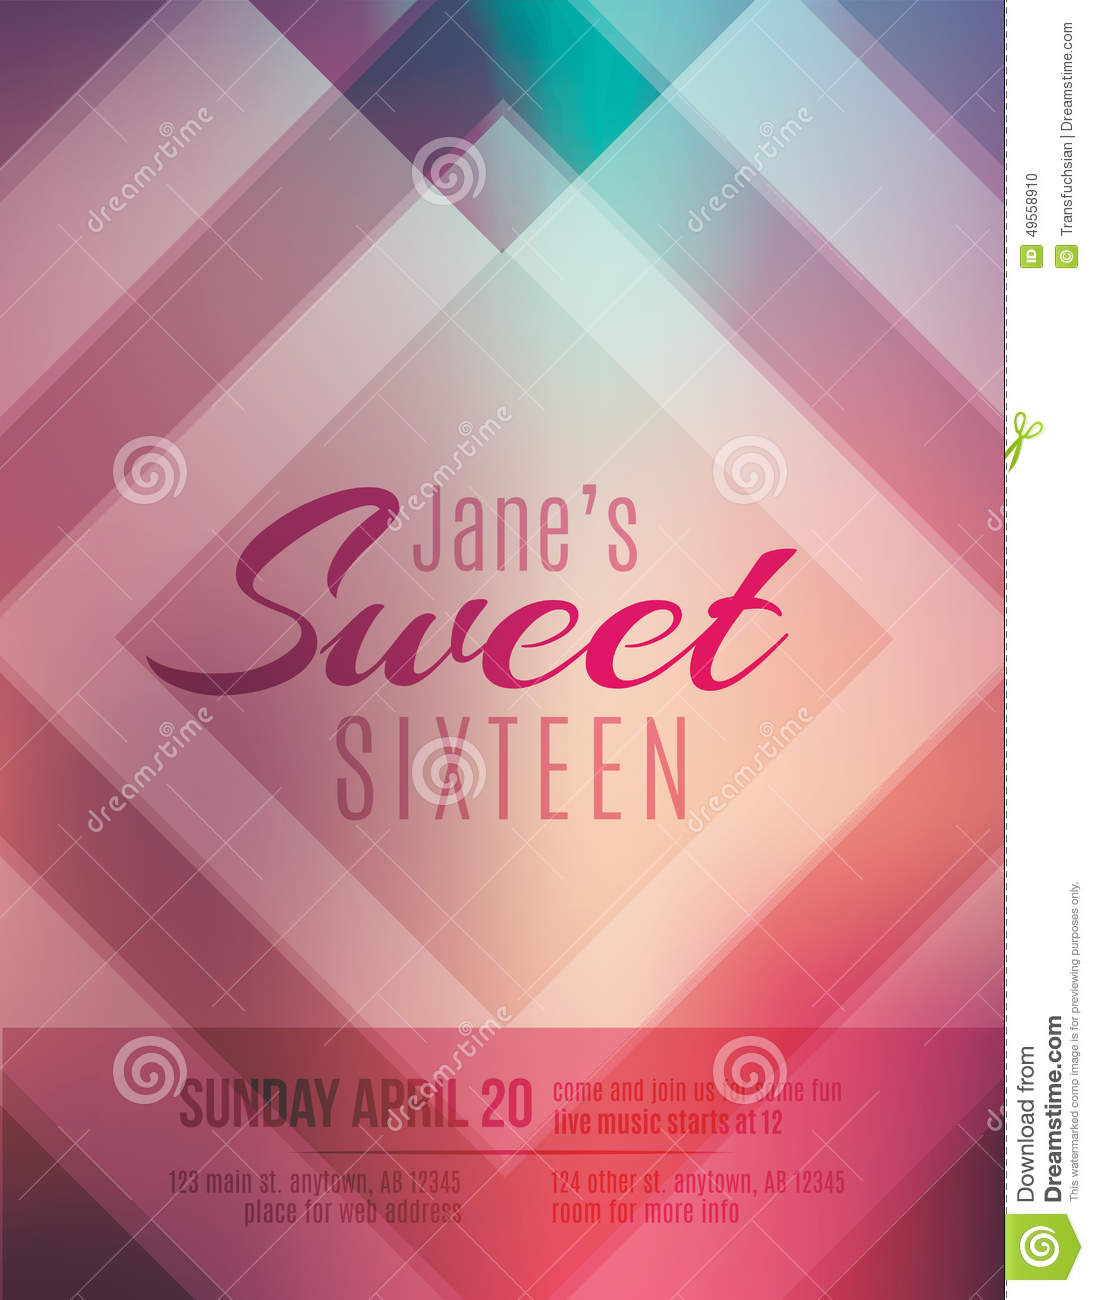 Sweet Sixteen Party Invitation Flyer Template Stock Vector - Sweet 16 party invitation templates